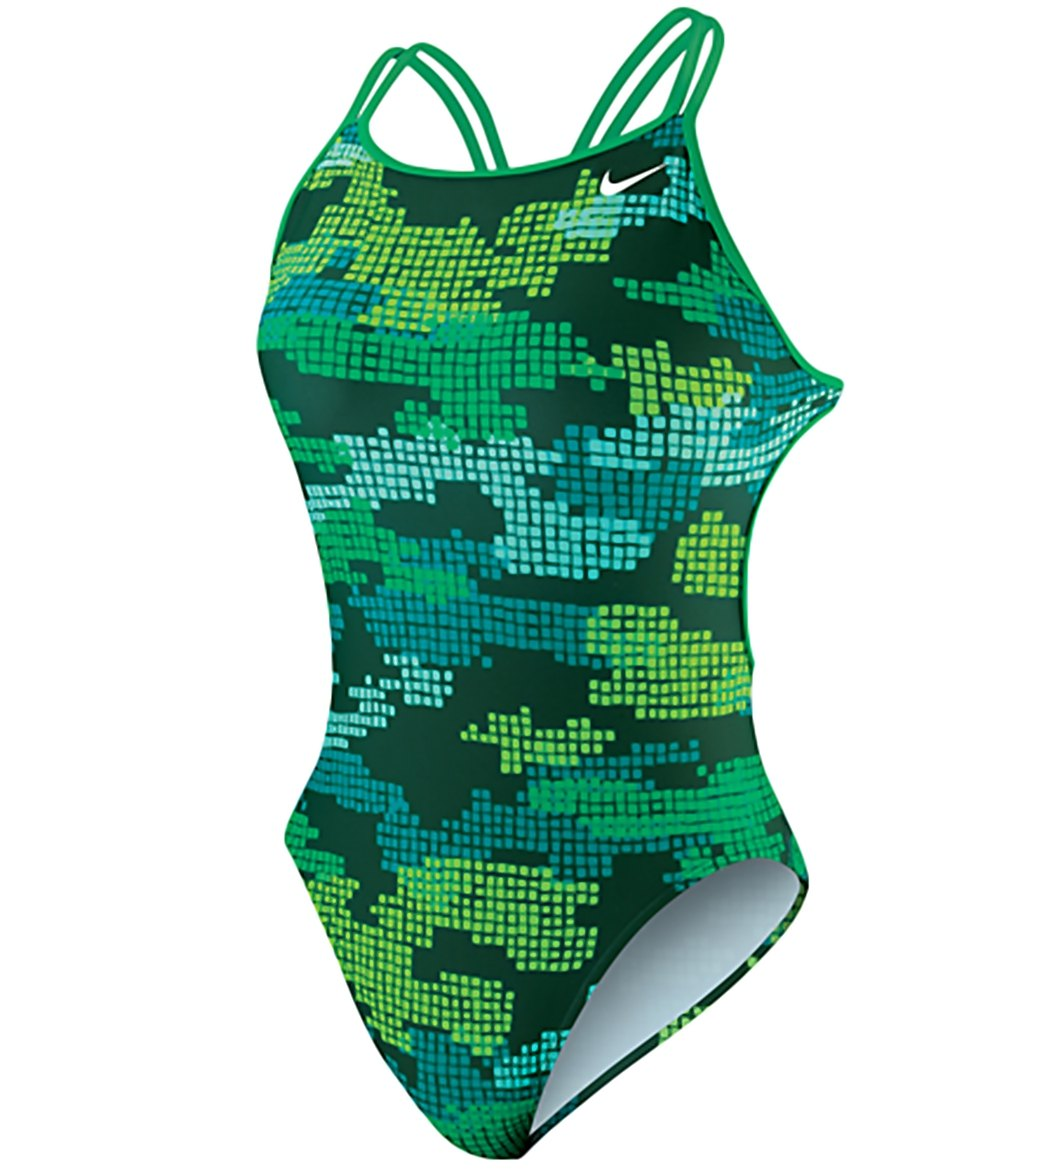 12a420225c2 Nike Swim Tech Camo Spider Back One Piece Tank Swimsuit at ...